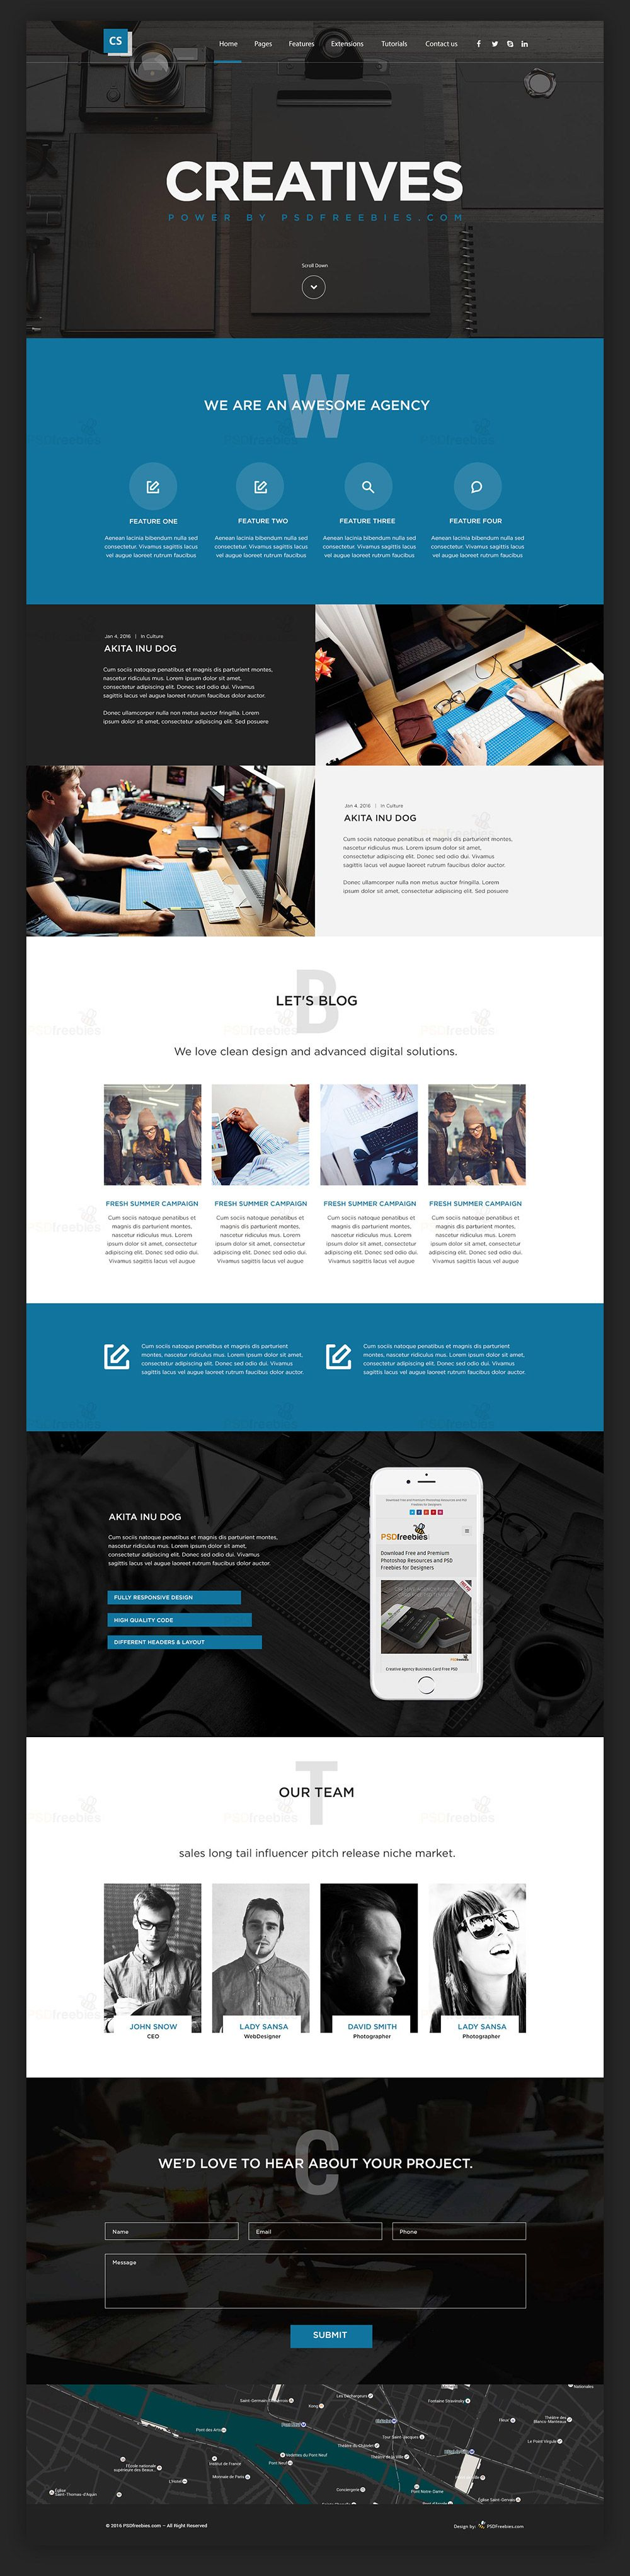 Creative digital agency website template free psd web01 creative digital agencies website templates free psd set friedricerecipe Images